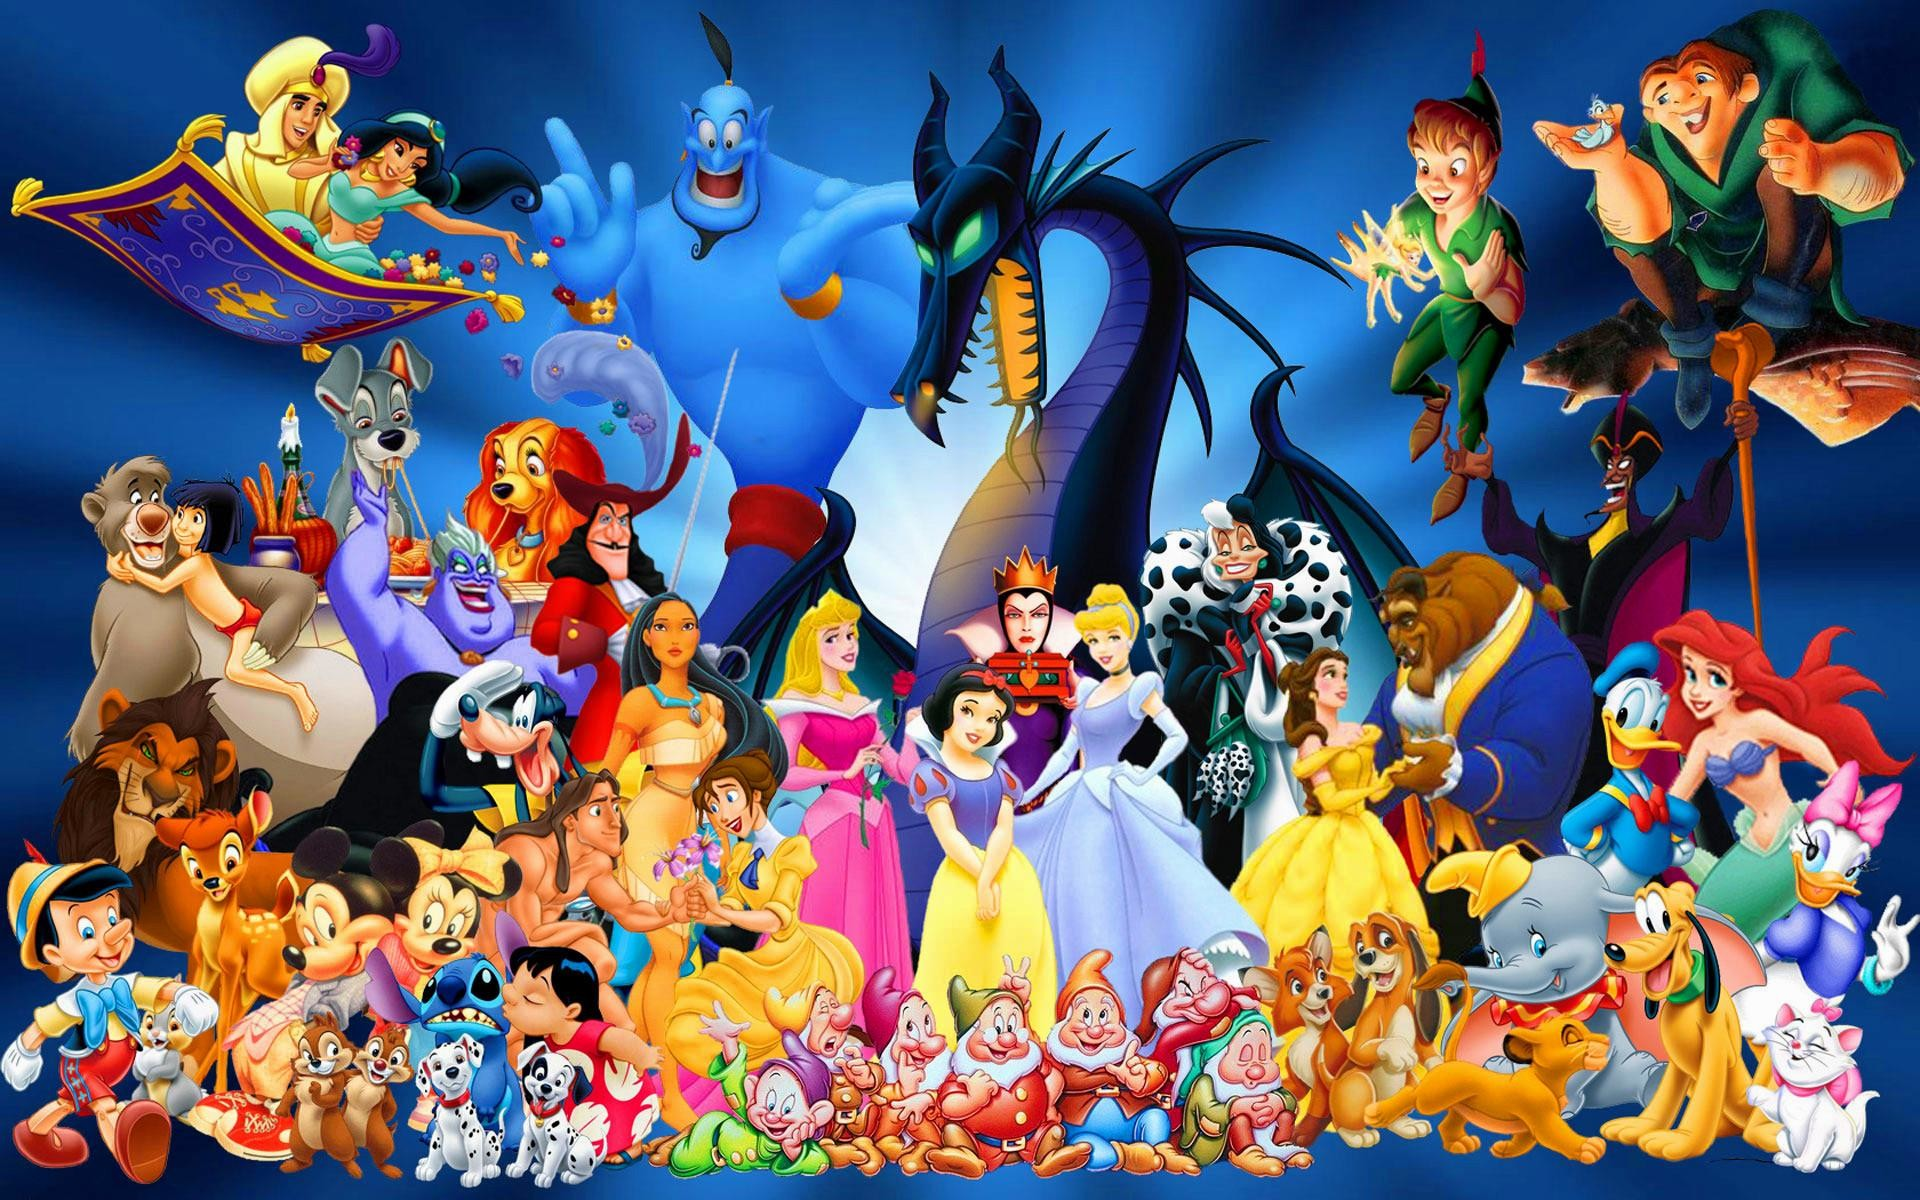 wallpaper.wiki-HD-Pictures-Disney-Computer-PIC-WPB009531